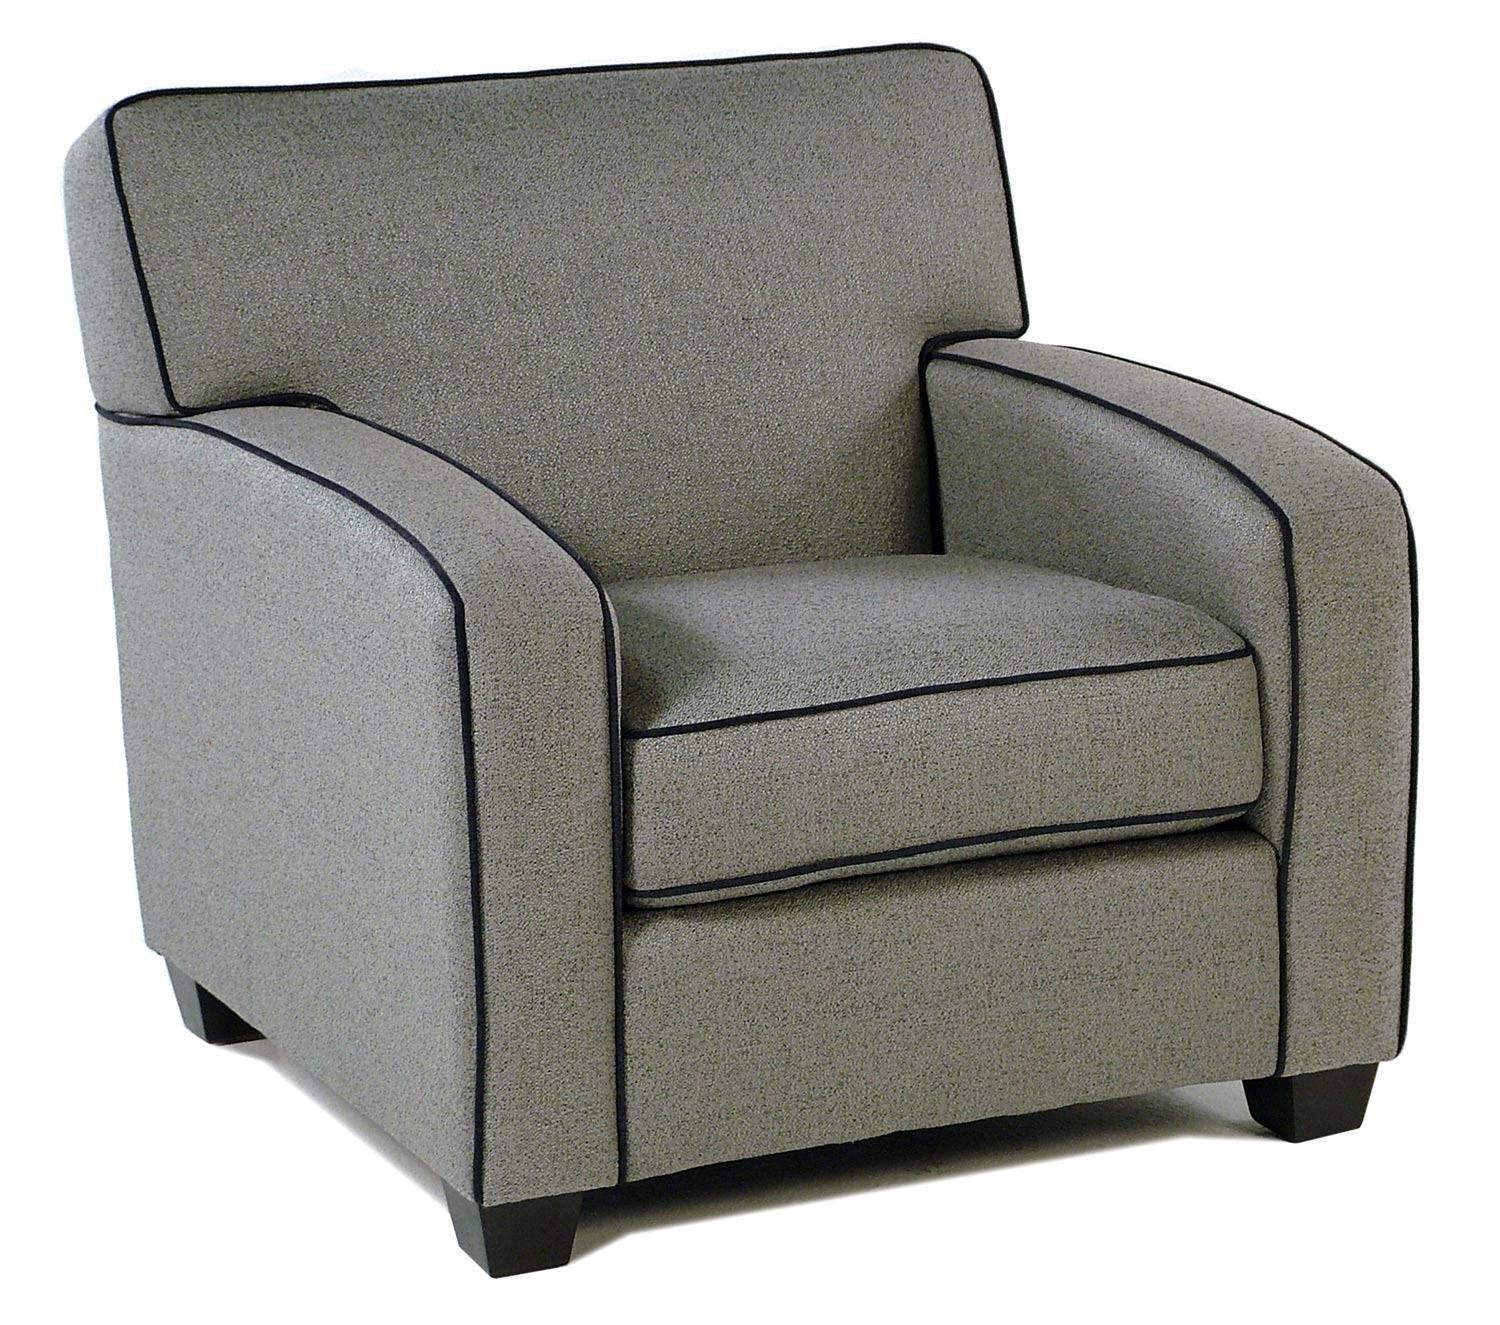 Decor-Rest Gatsby Upholstered Chair - Item Number: 2401C